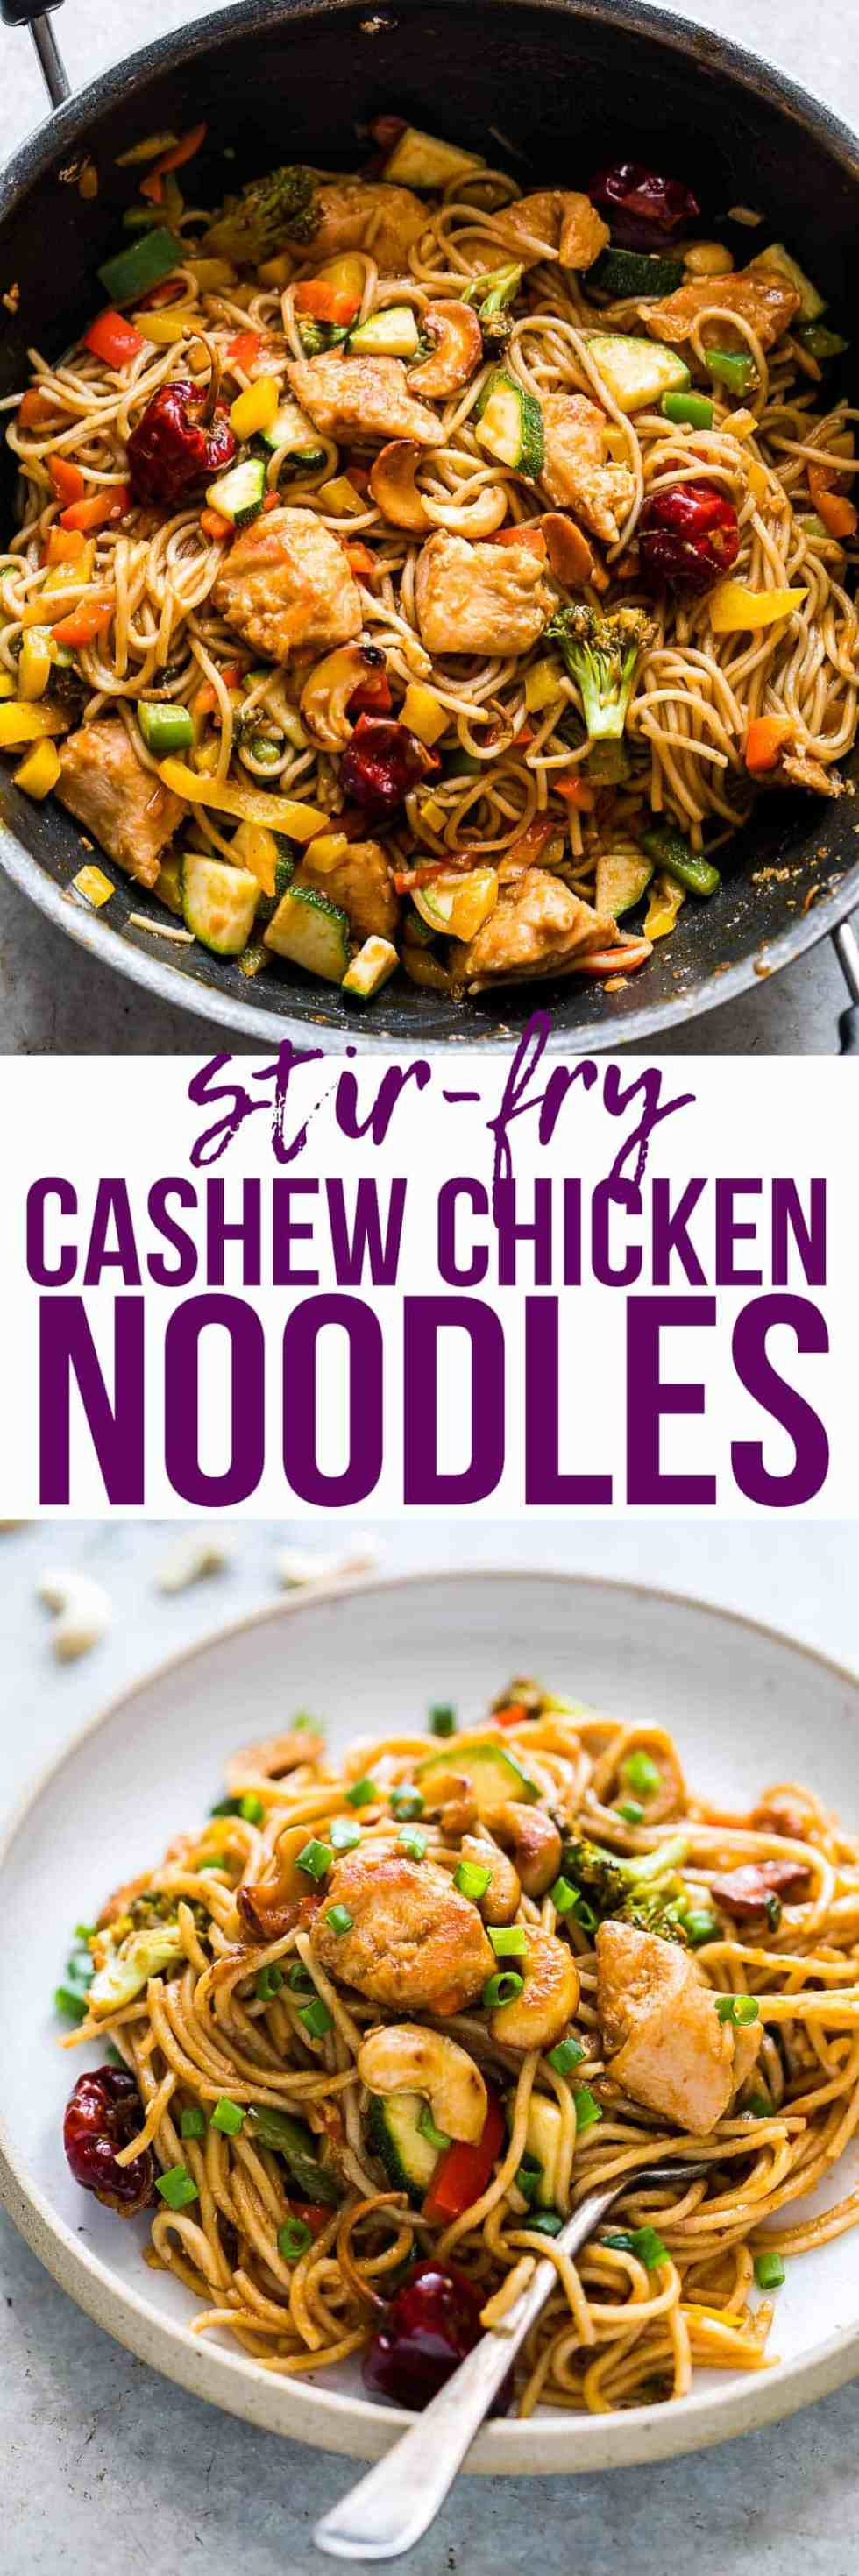 Chinese Cashew Chicken Noodles Stir-Fry is a delicious, easy take on your favourite take-out cashew chicken recipe. Crispy bits of chicken and noodles are tossed in a super flavourful, spicy sauce and roasted cashews for a meal that the whole family will love!